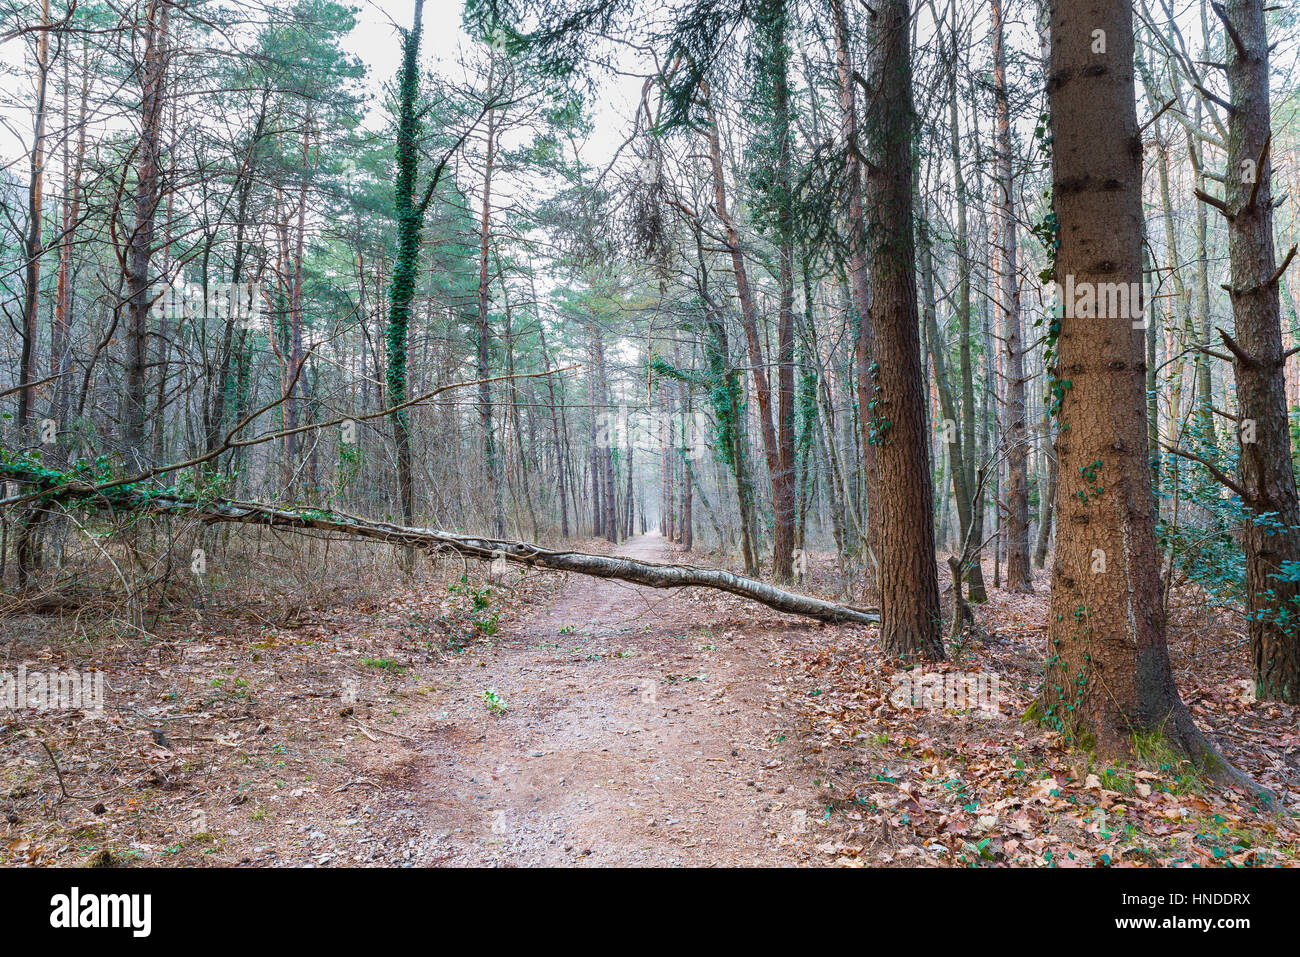 Concept of unexpected obstacle in our life and in our path. Obstacle in isolated place to be faced alone; a loss - Stock Image